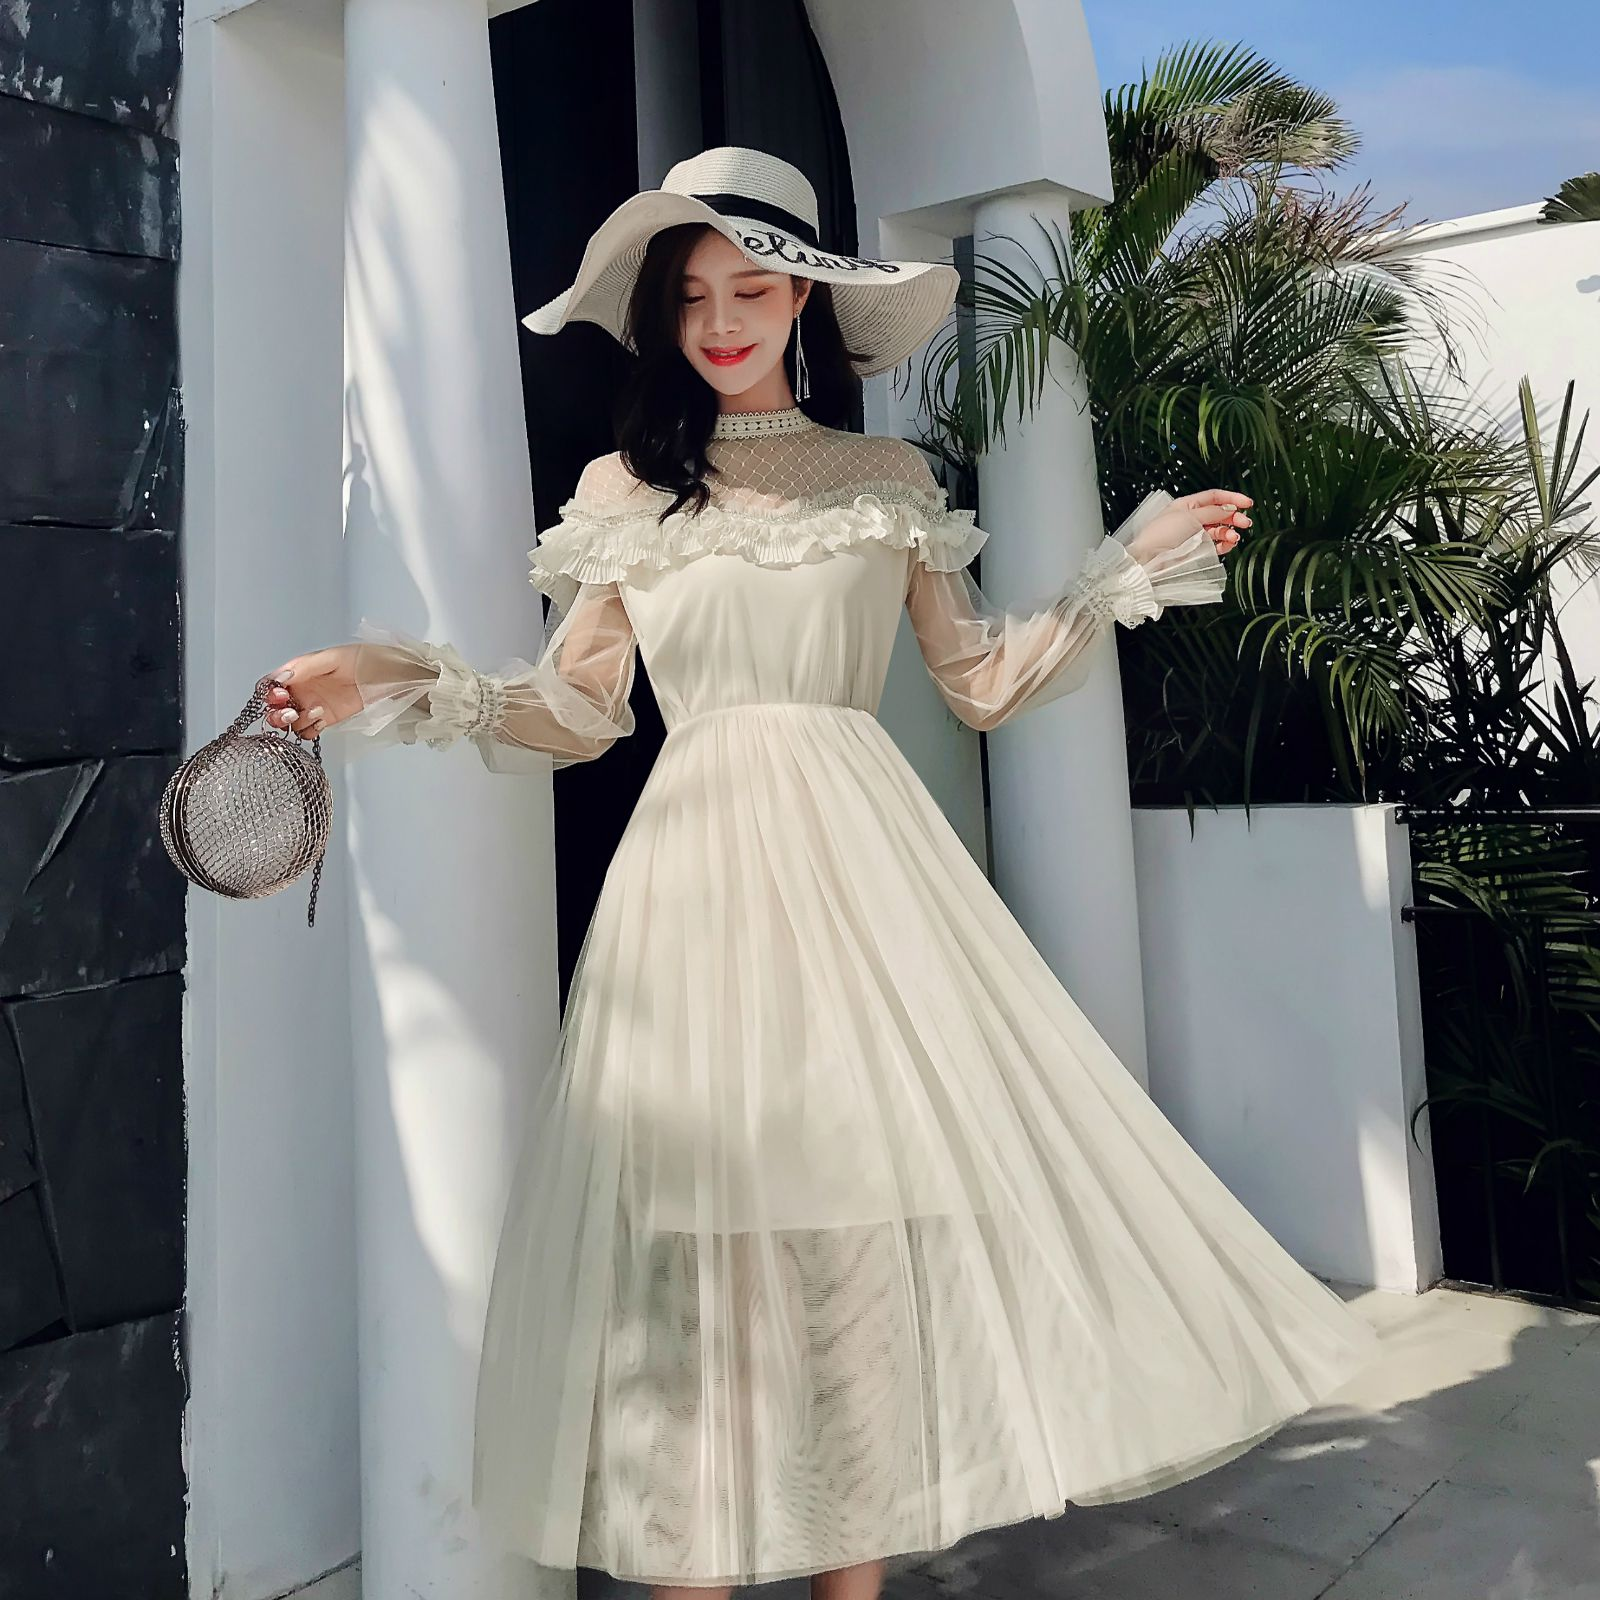 New 19 Spring Autumn Women dress Flare Sleeve Patchwork Mesh Turtleneck Half A High-end French Lace Dresses Blue Apricot 9086 1